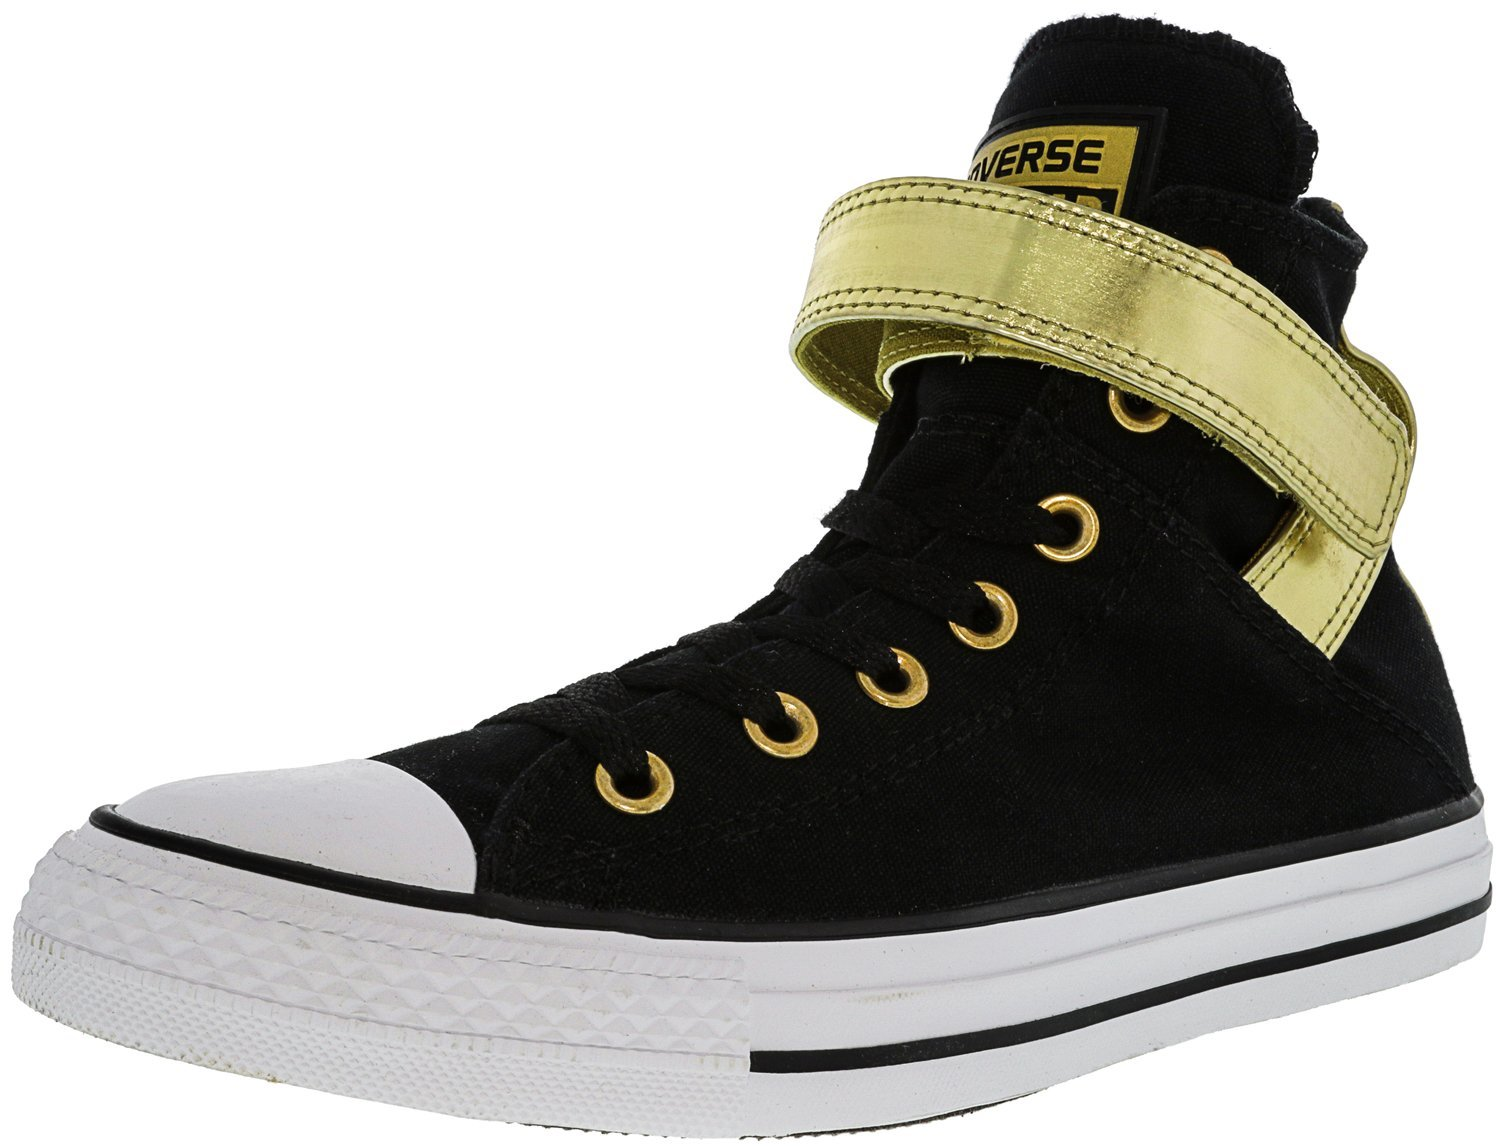 Converse Women's All Star Brea High-Top Leather Fashion Sneaker B0713WJTDF 8 B(M) US|Black / Gold